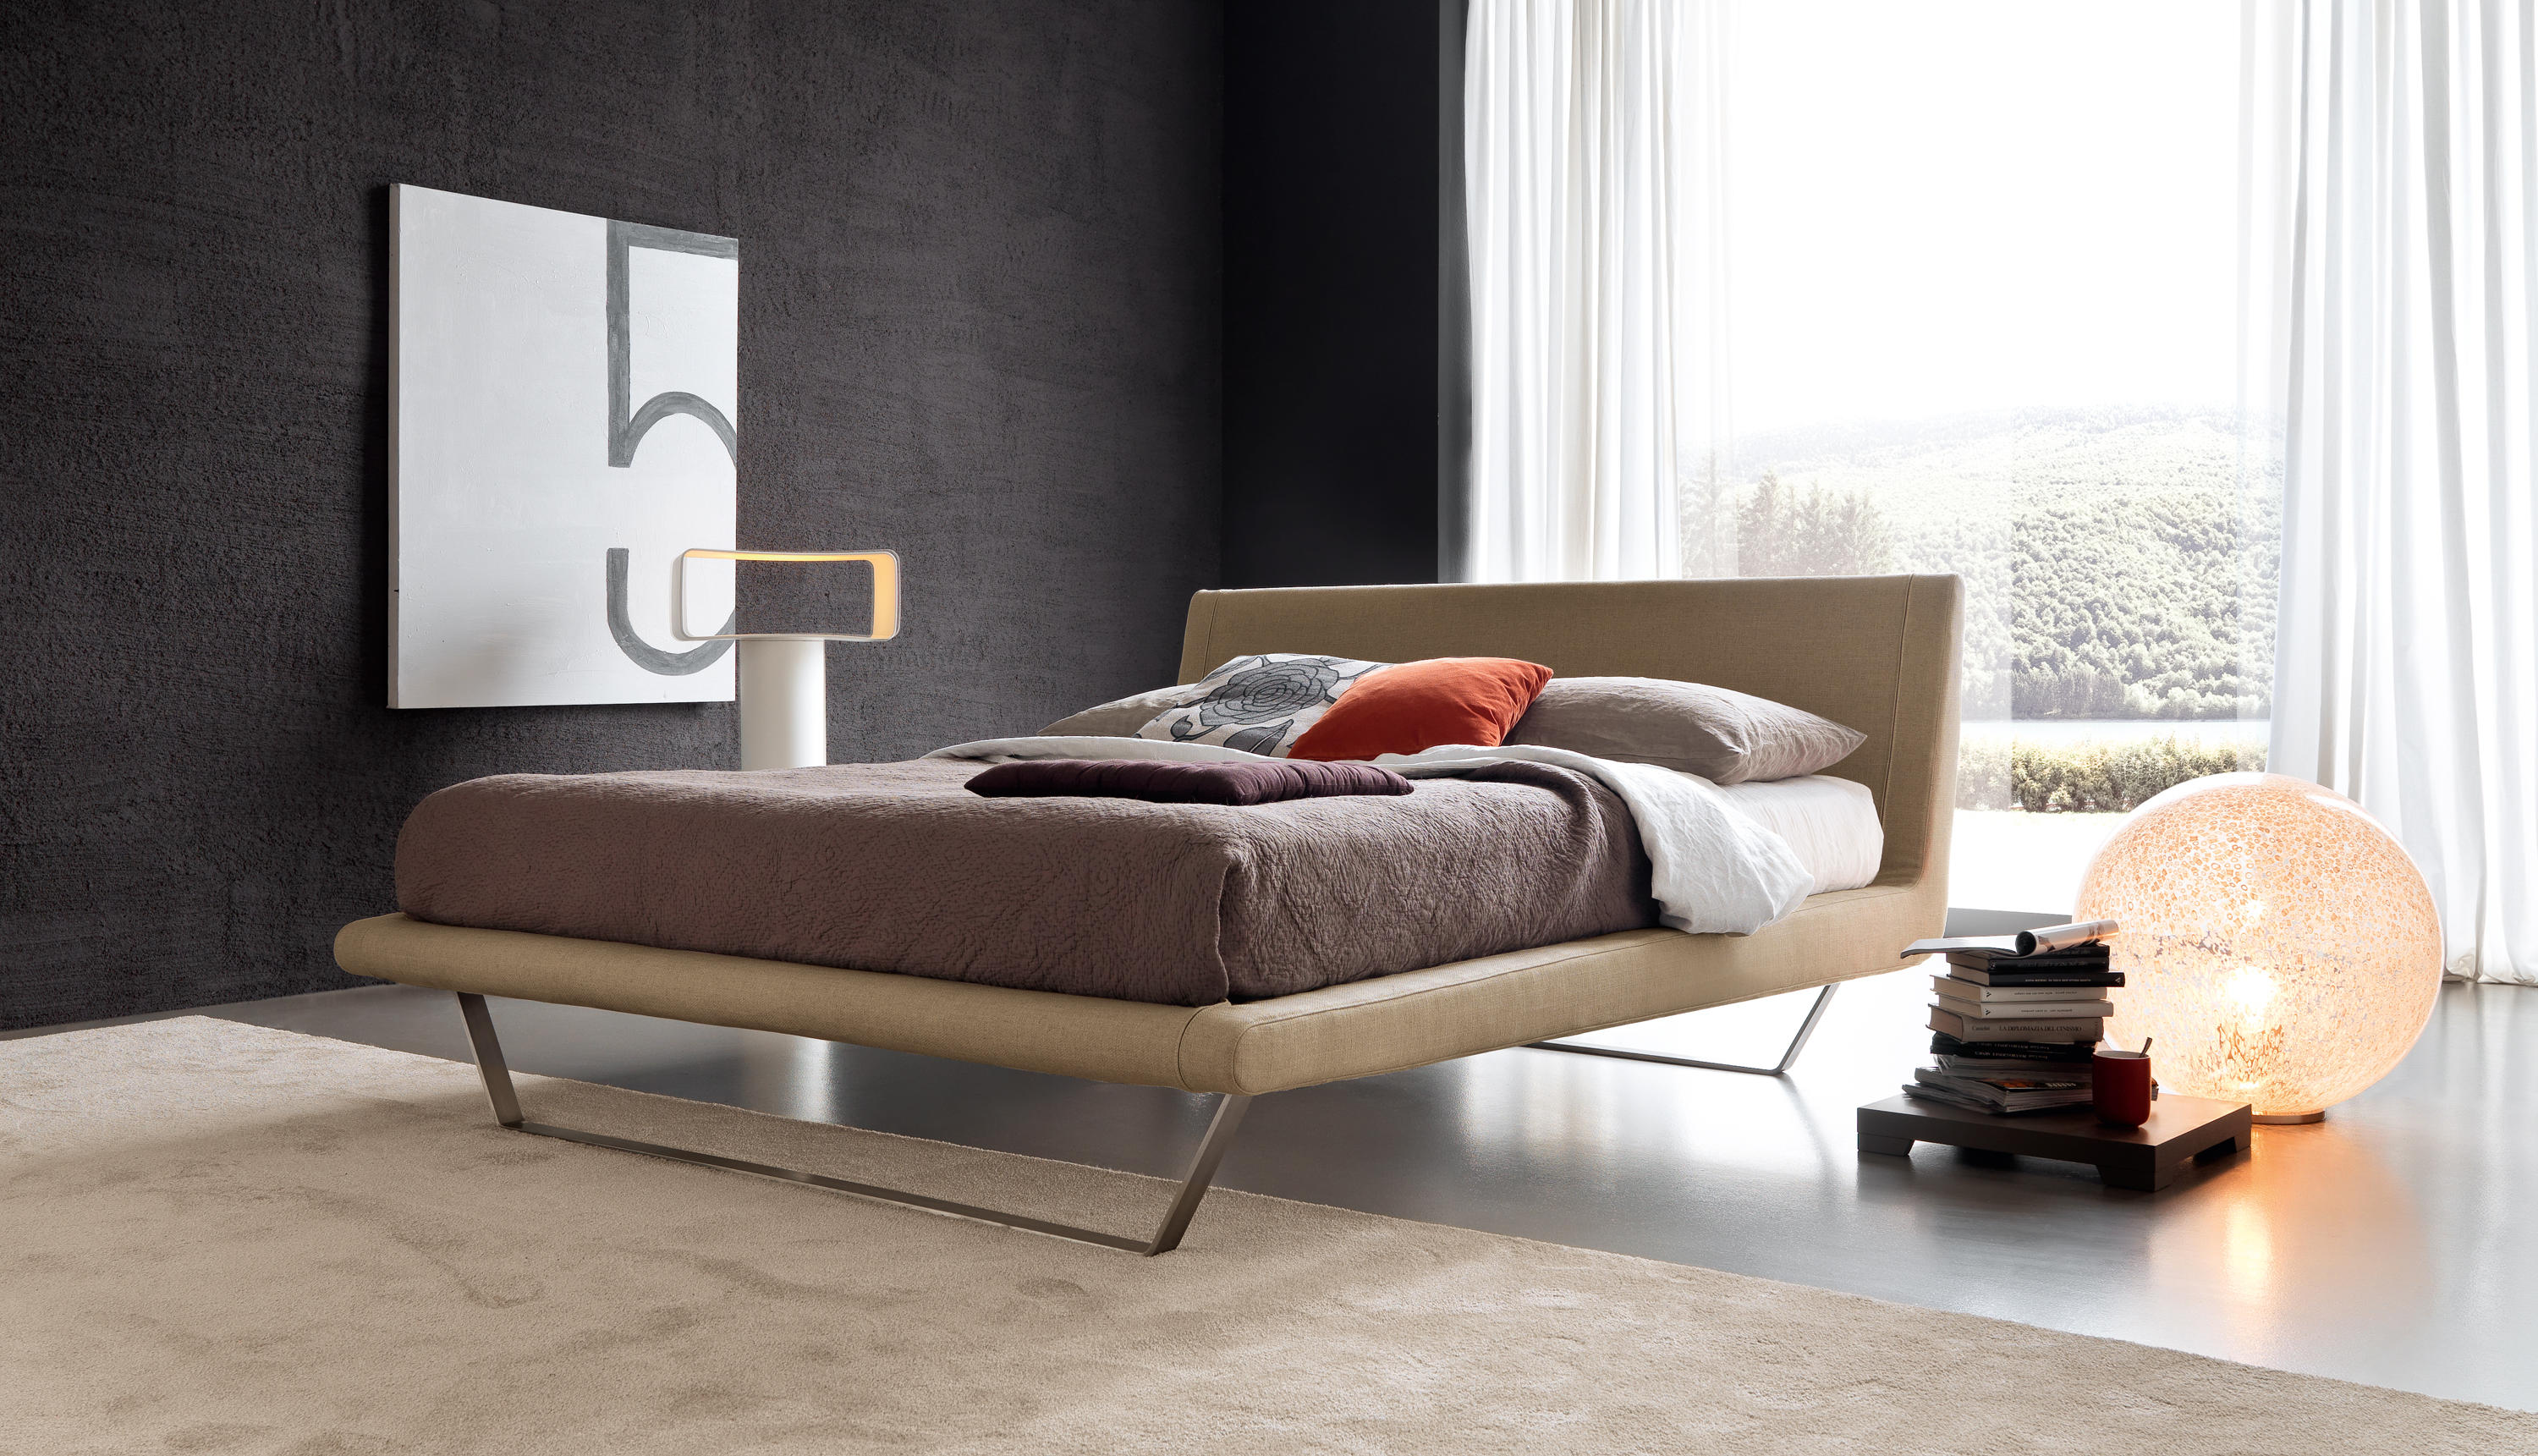 Letti Design.Plaza Beds From Bolzan Letti Architonic